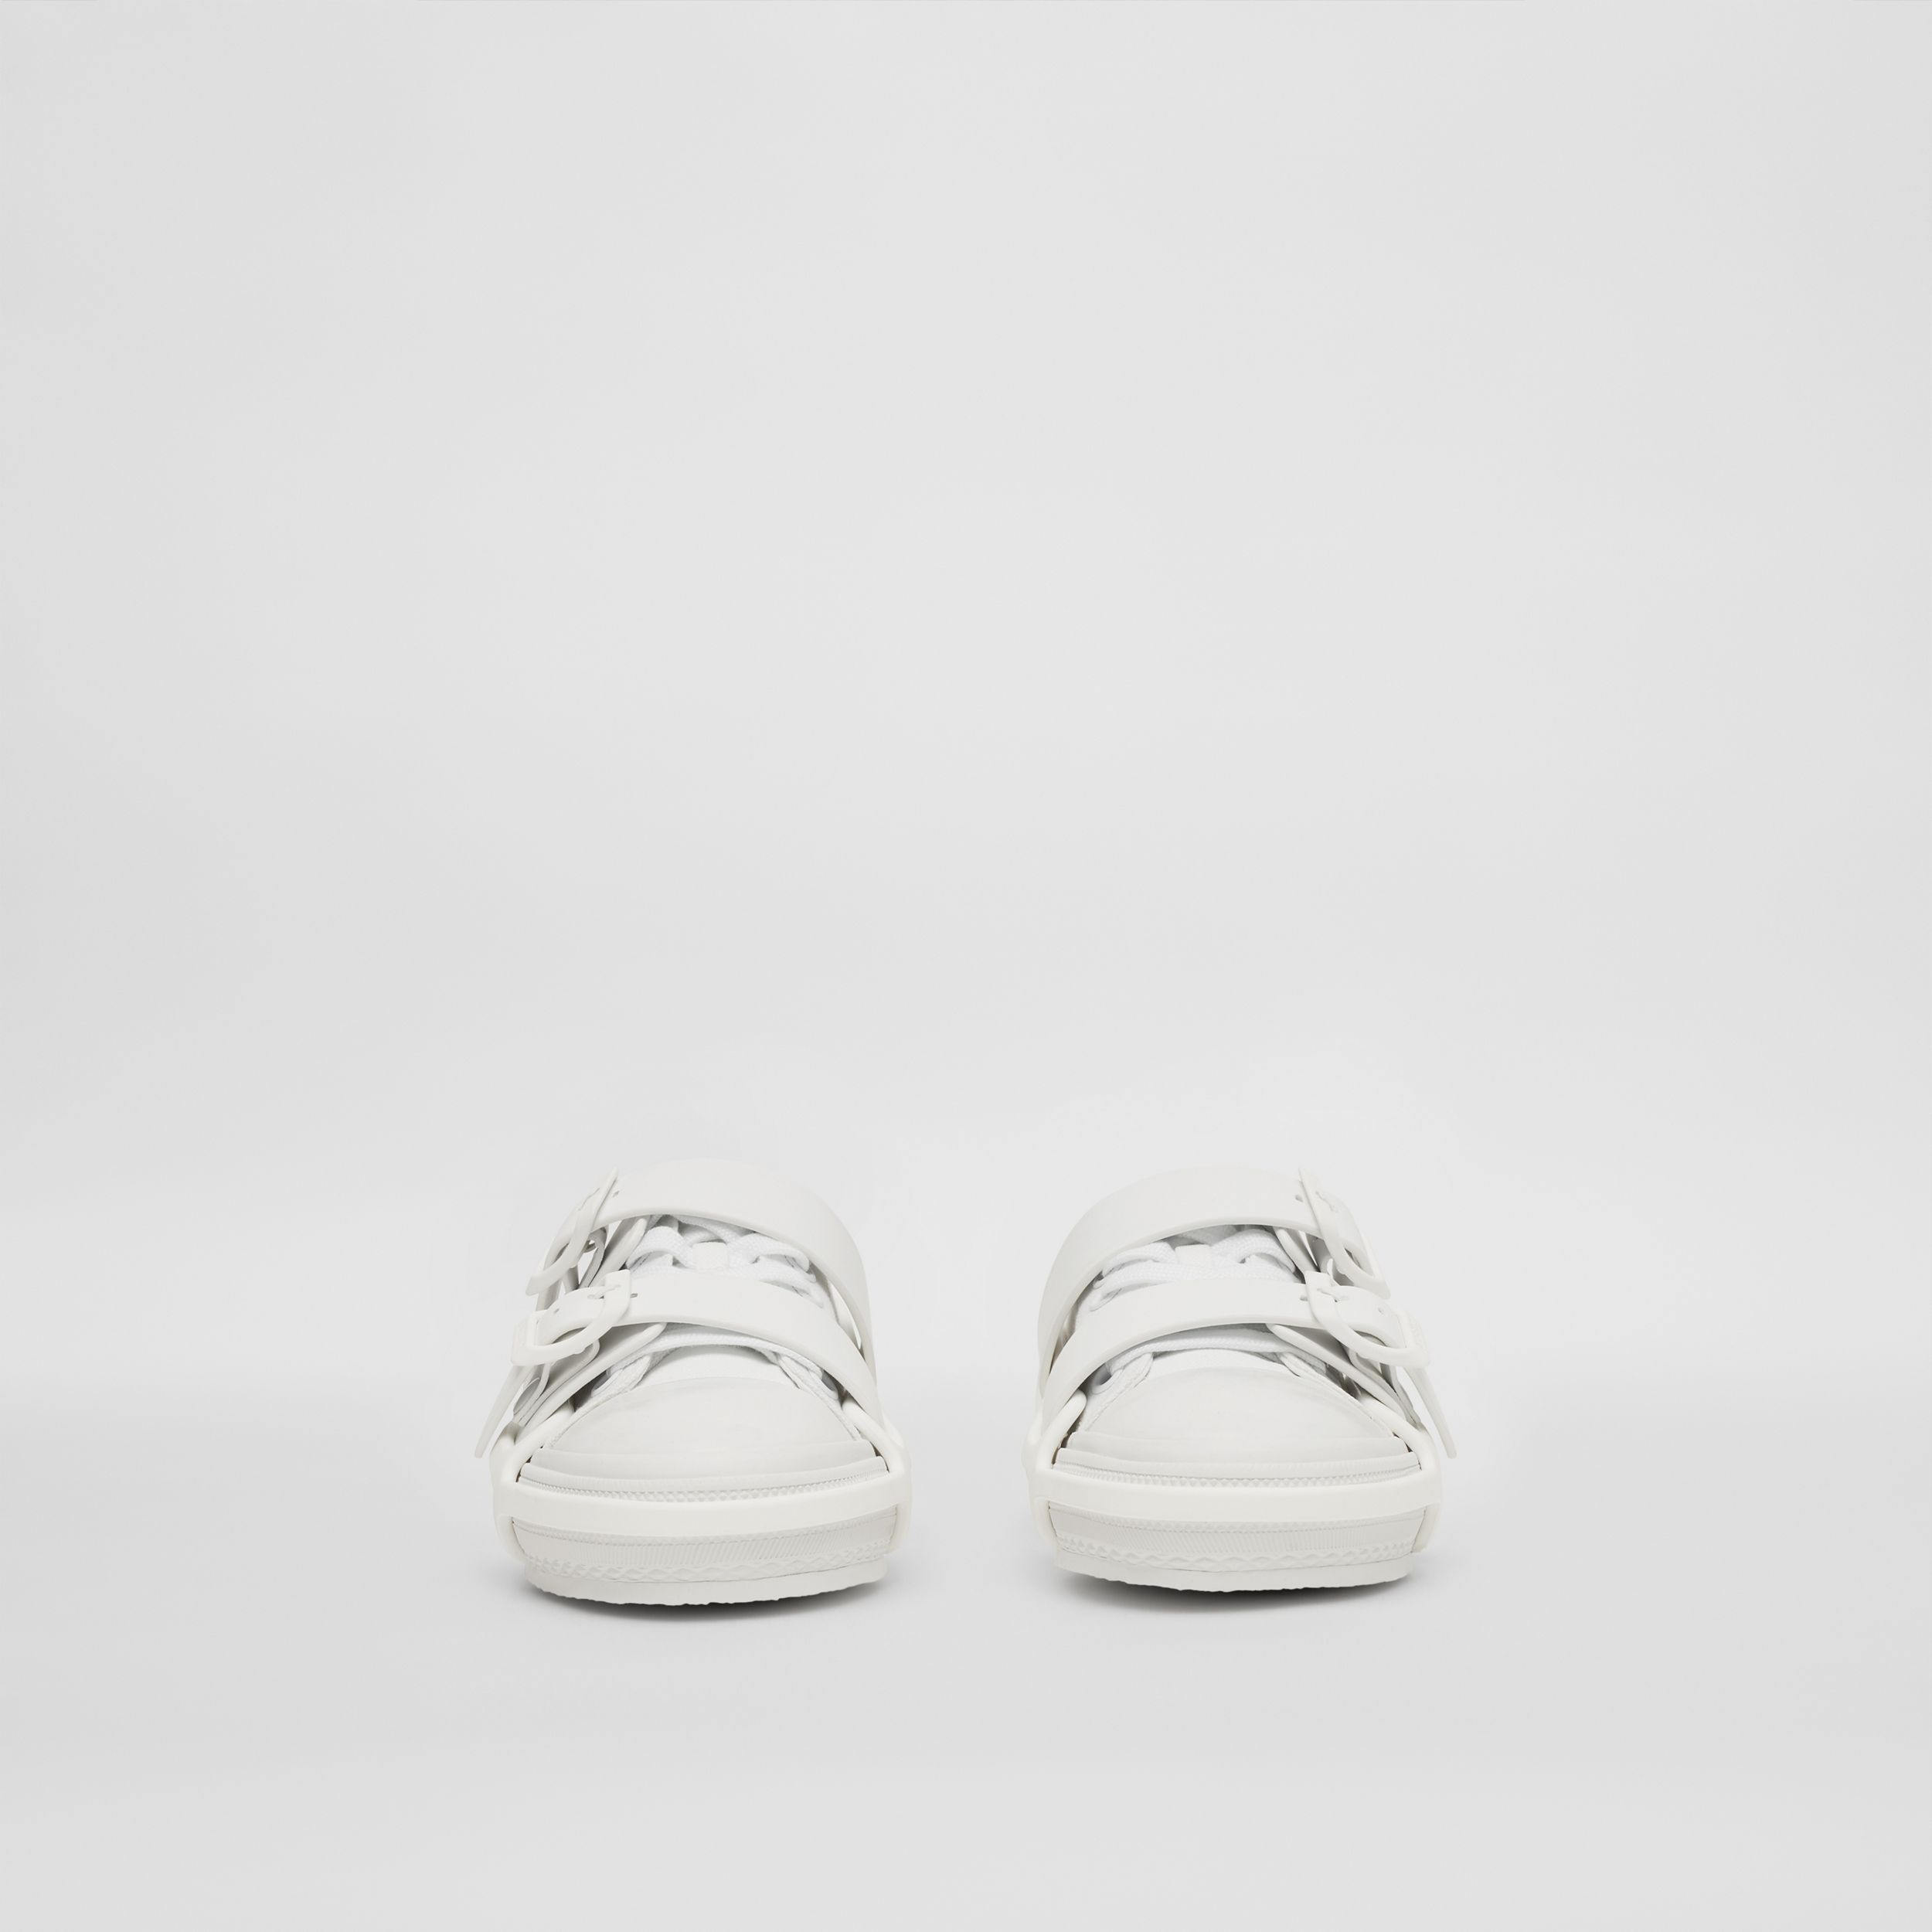 Cotton and Leather Webb Sneakers in White - Women | Burberry - 3